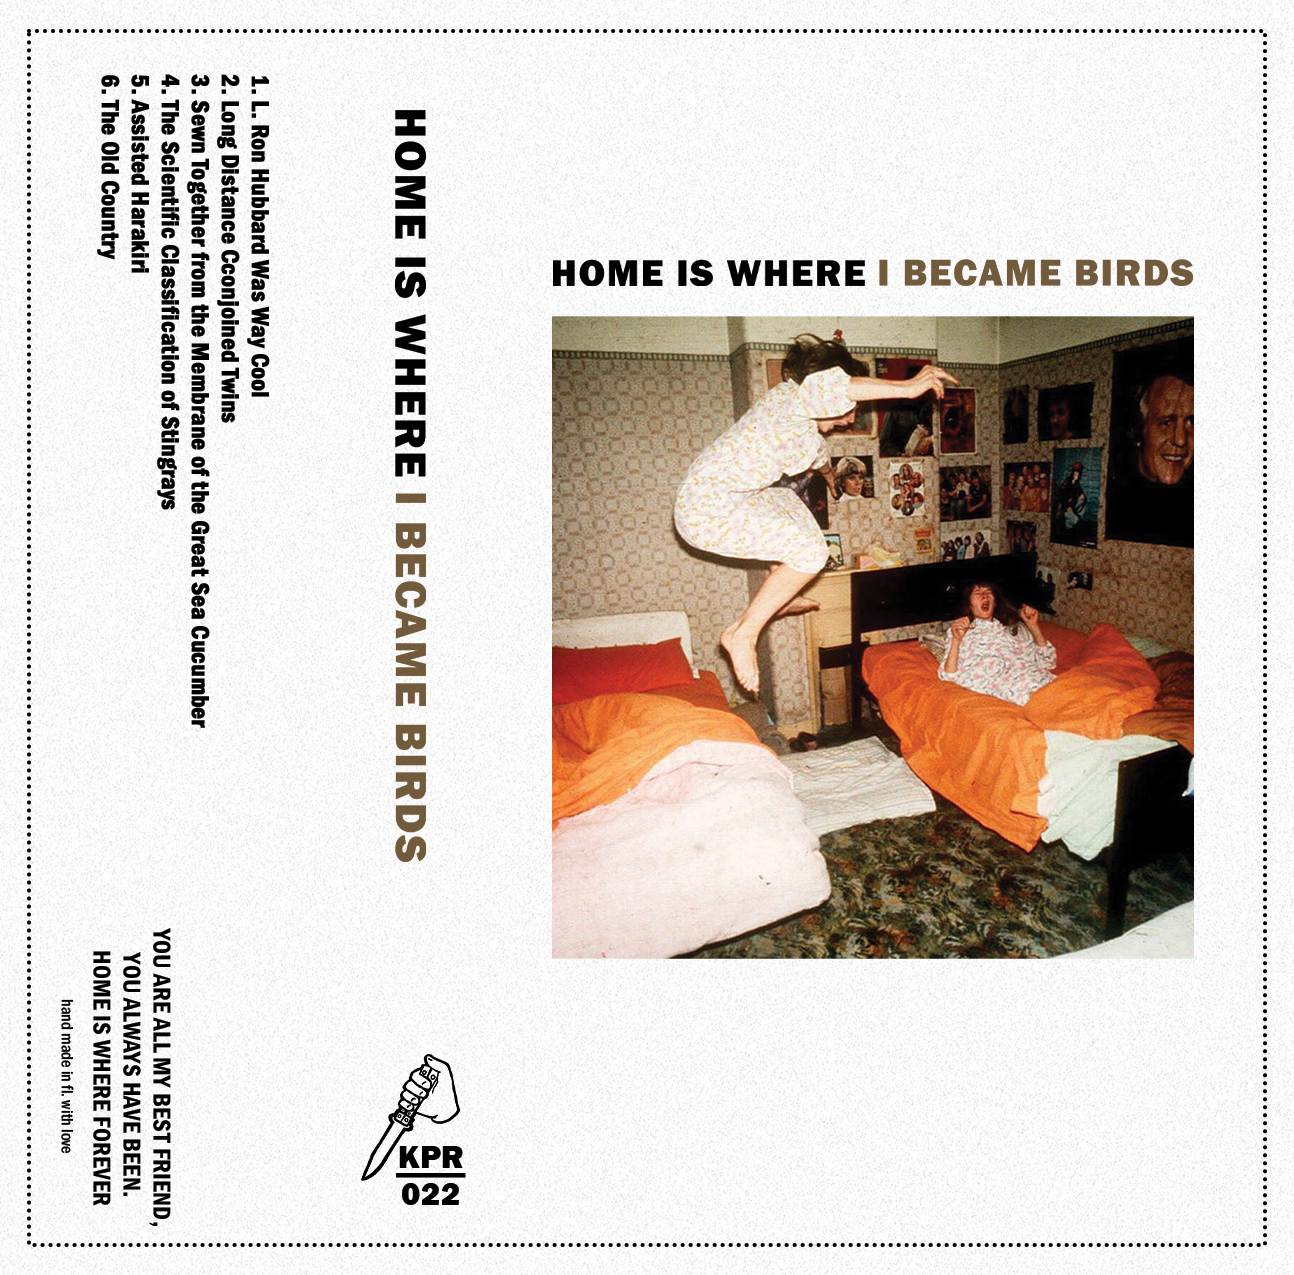 [KPR022] Home Is Where - I Became Birds